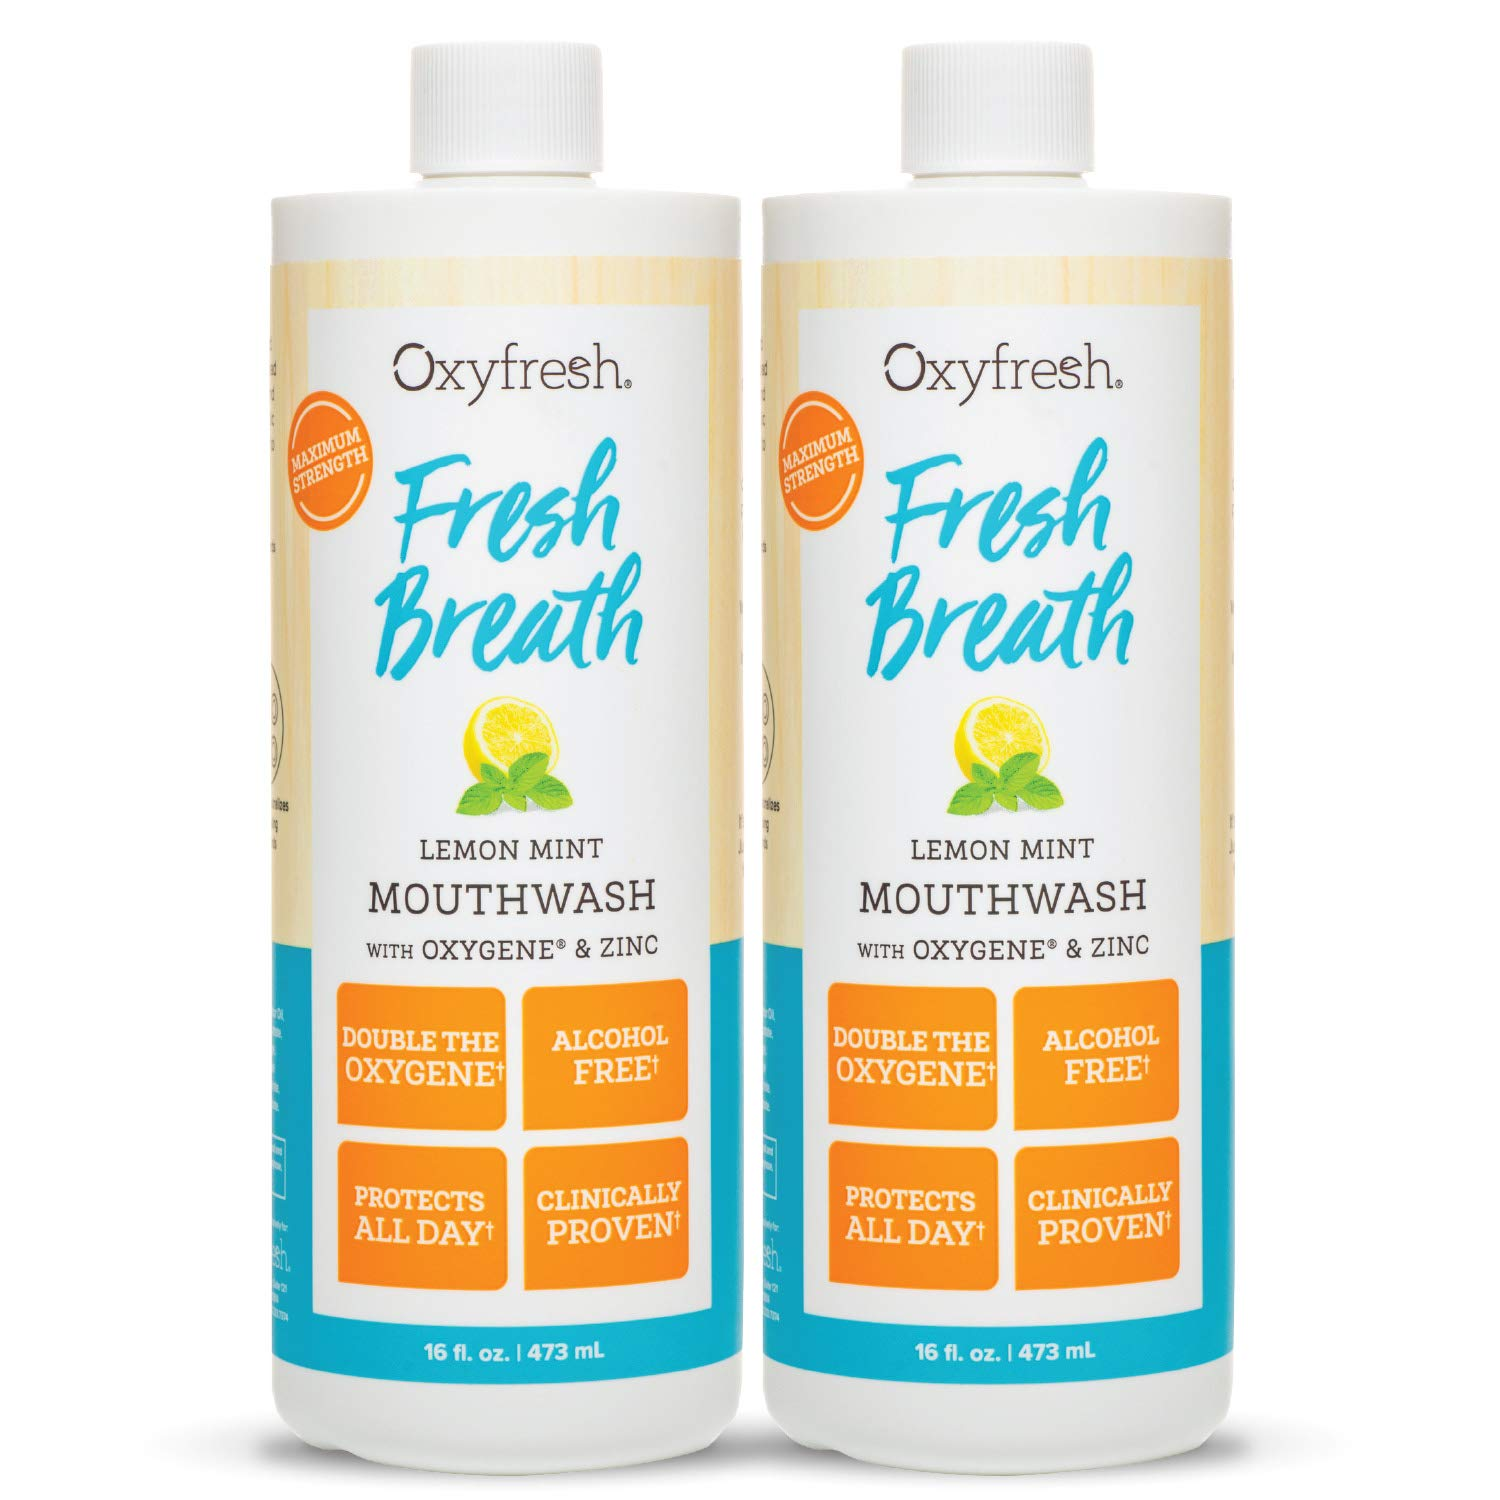 Oxyfresh Fresh Breath Lemon Mint Mouthwash — Award-Winning, Dentist-Recommended Bad Breath Mouthwash - Alcohol Free, Fluoride Free with Aloe and Natural Essential Oils. 2 Pack 16 oz